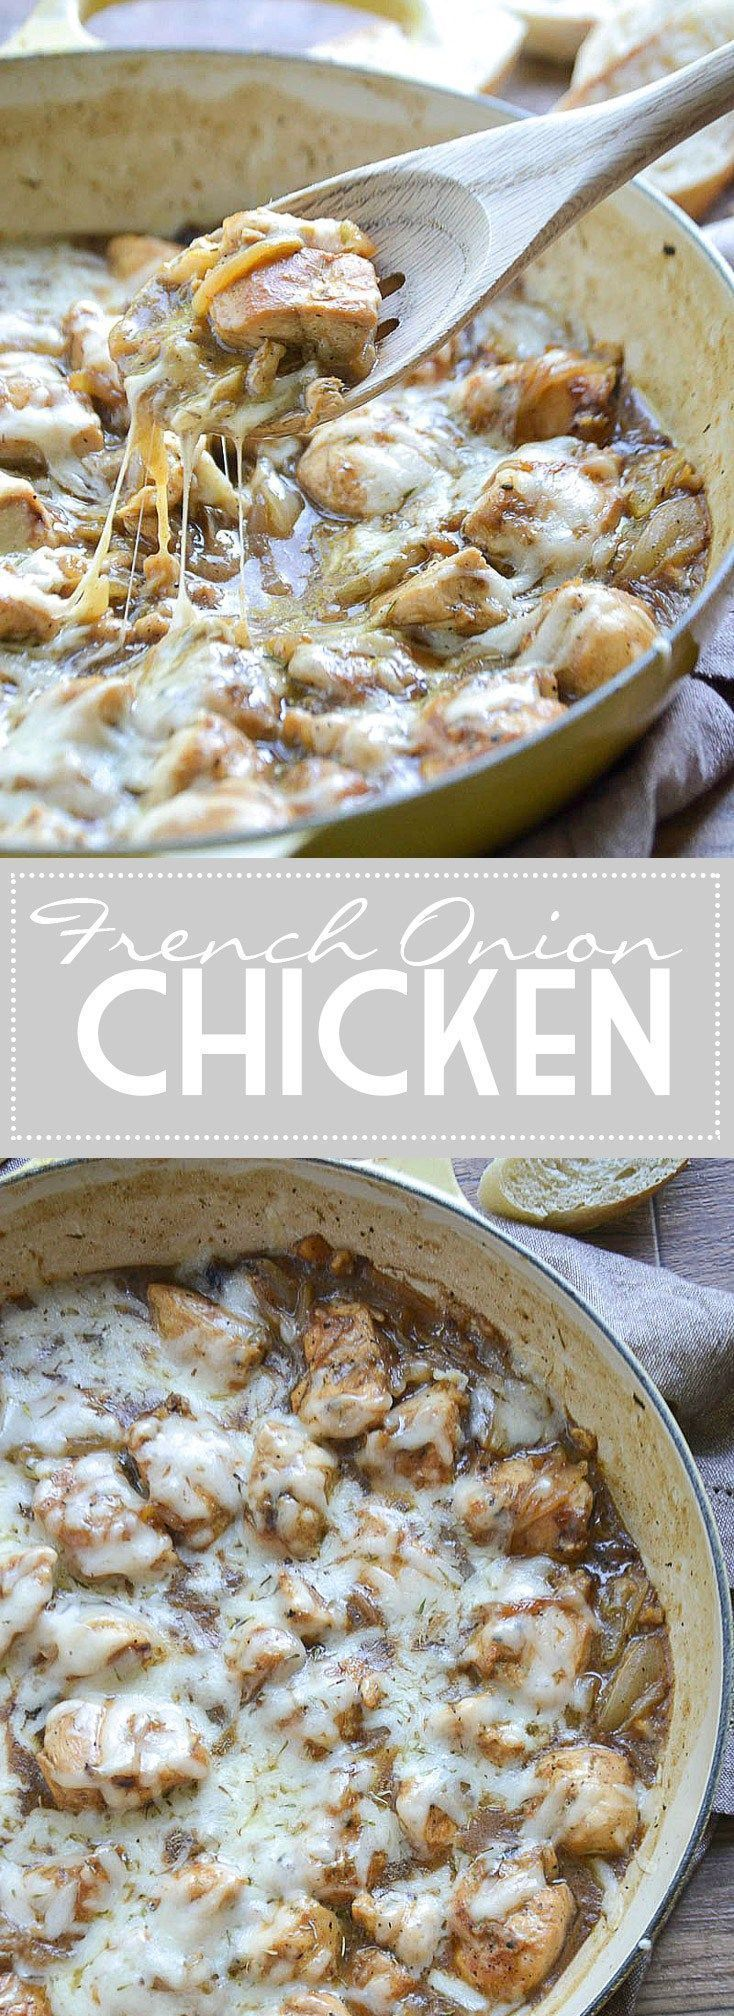 Chicken french recipes easy